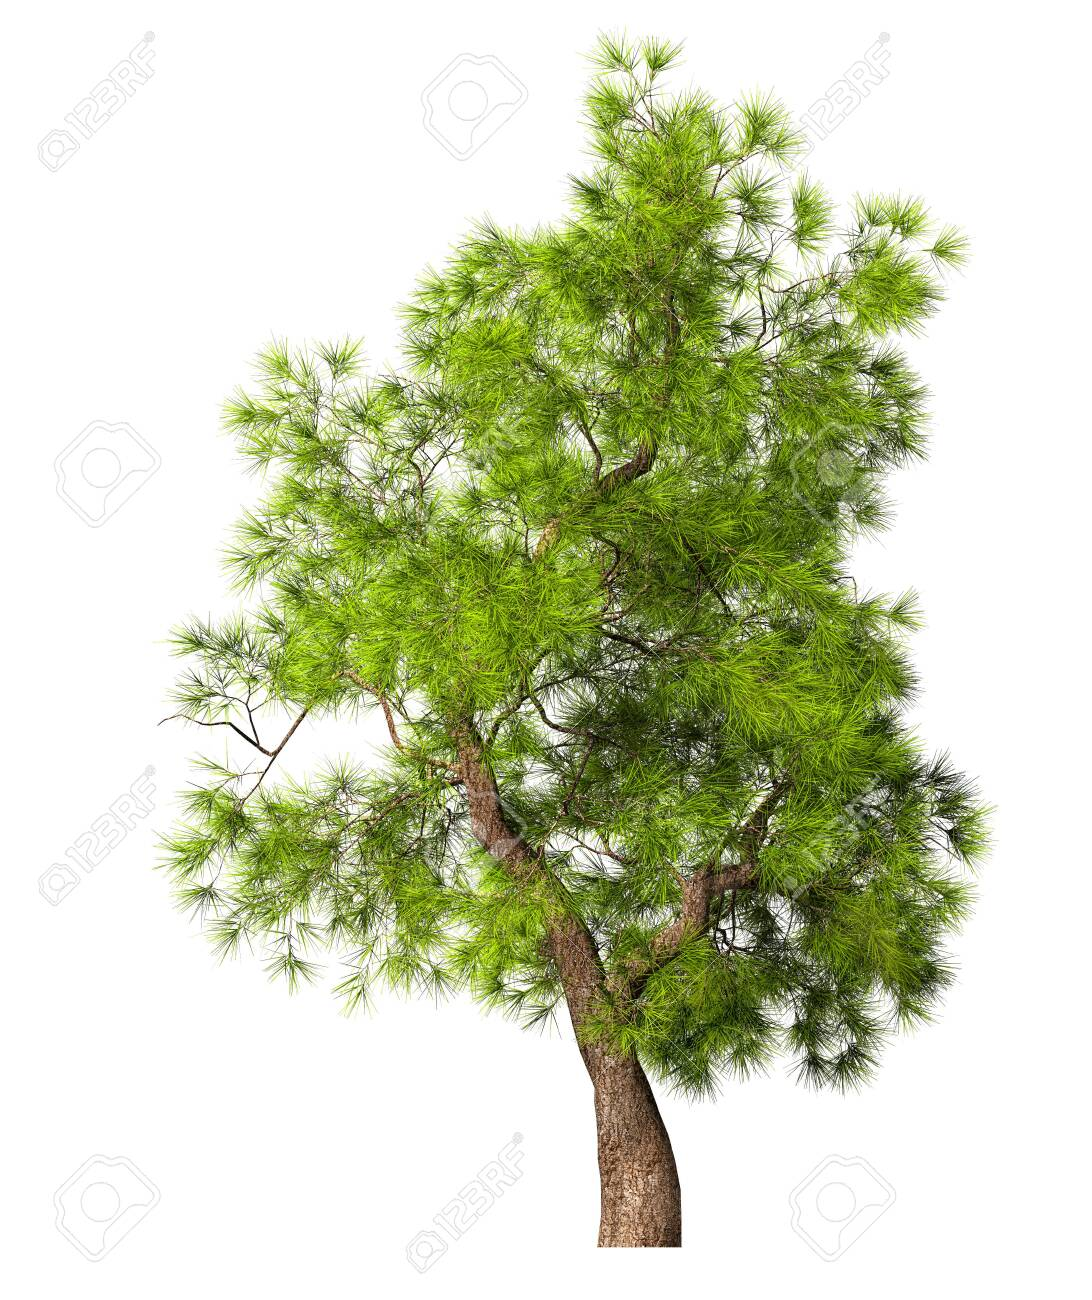 Coniferous evergreen spruce tree with a lush crown on a white background. 3D illustration - 149821609